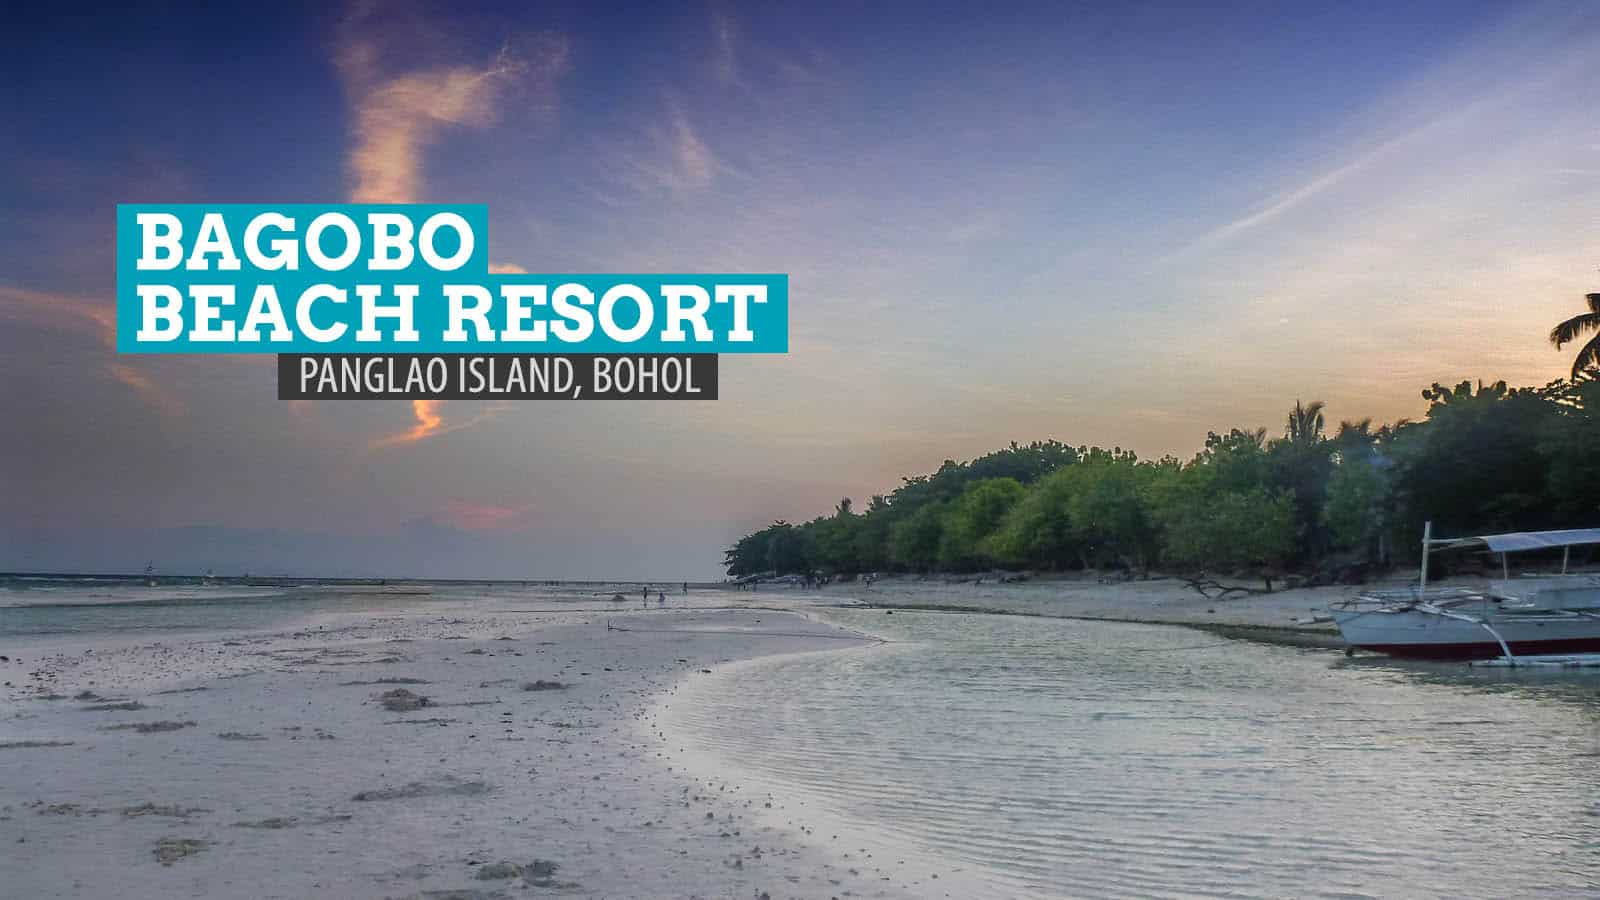 Review: Bagobo Beach Resort in Panglao Island, Bohol